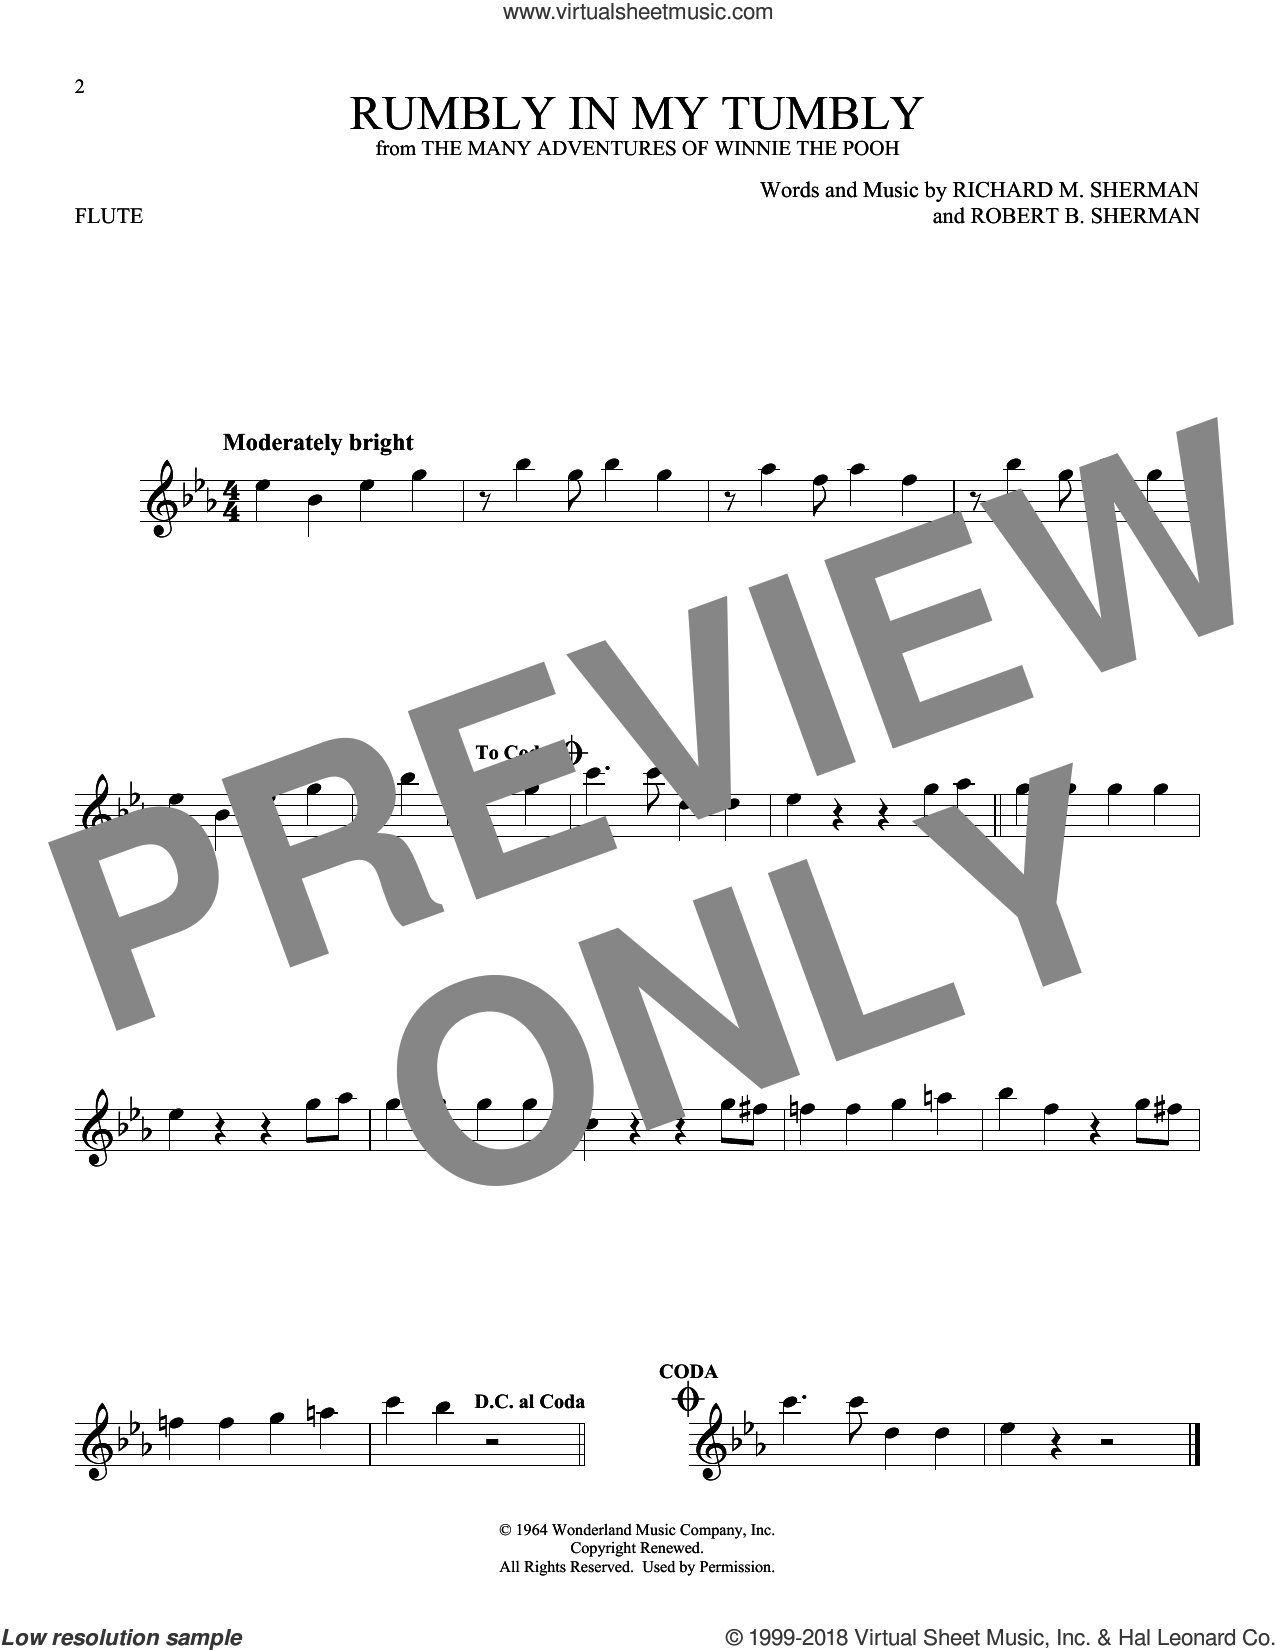 Rumbly In My Tumbly sheet music for flute solo by Richard M. Sherman and Robert B. Sherman, intermediate skill level